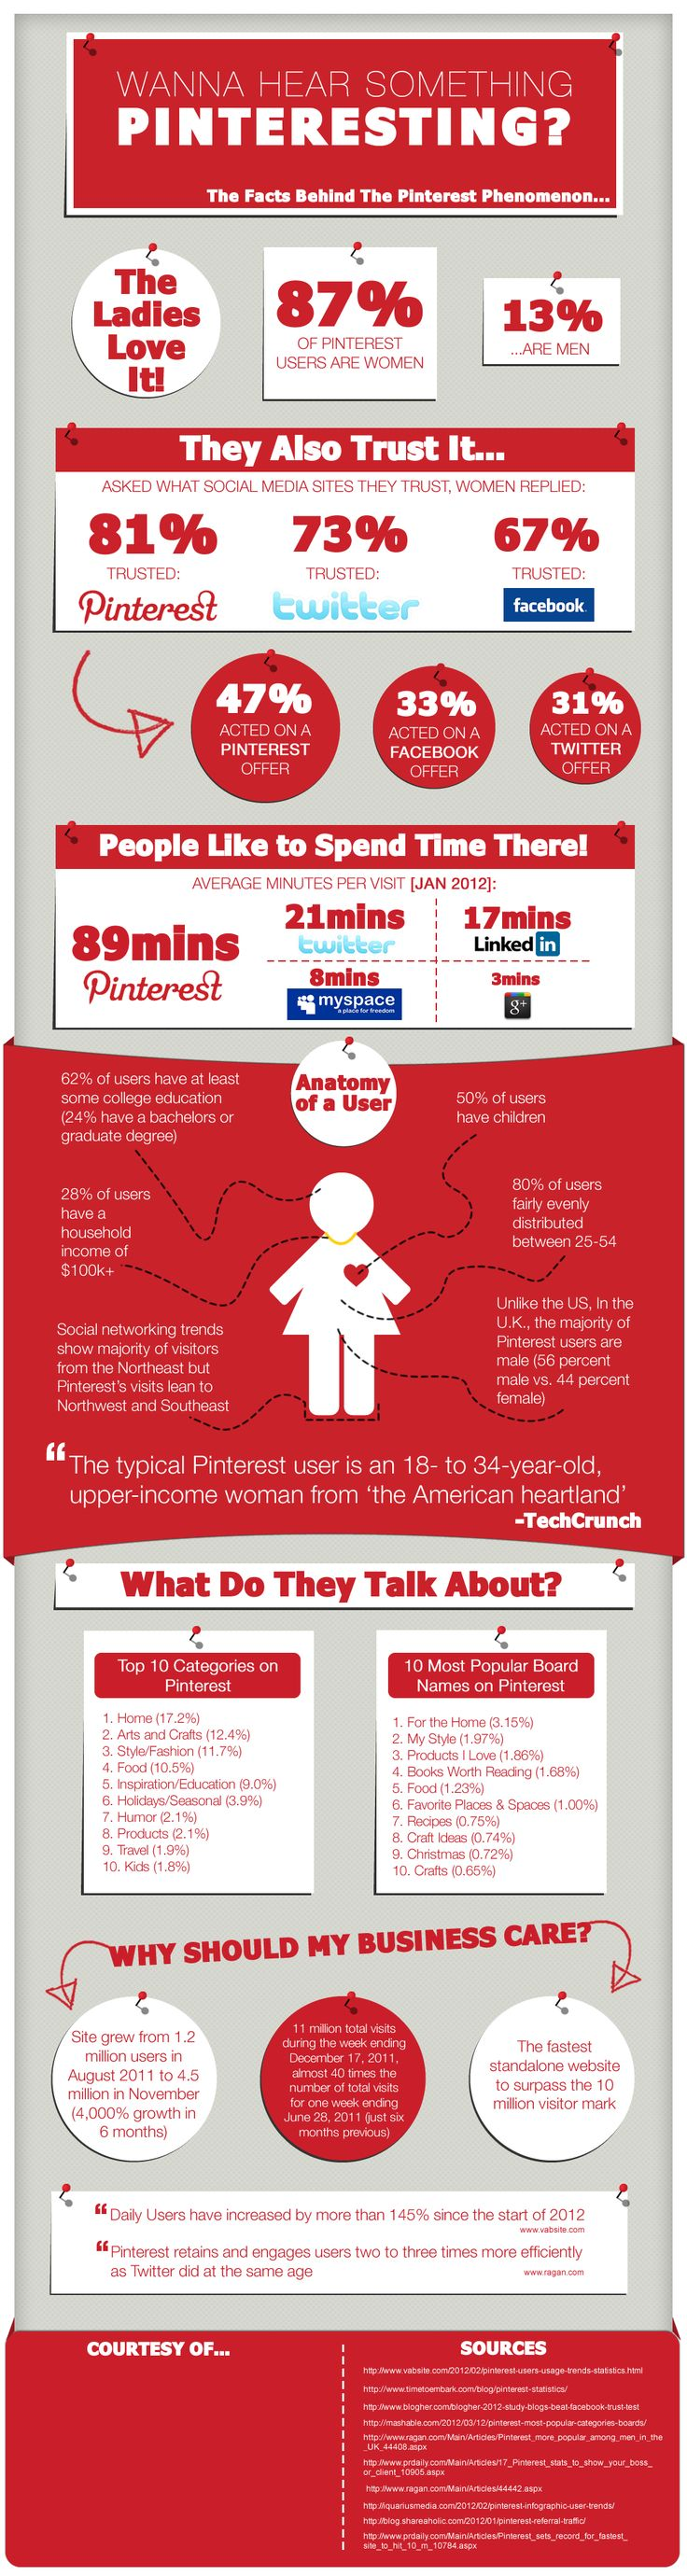 Wanna hear something PINTERESTING? Snazzy infographic and video on Pinterest, who is using it and why.Social Network, Social Media Marketing, Internet Marketing, Wanna Hearing, Facts, Pinterest Infographic, Media Infographic, Socialmedia, Business